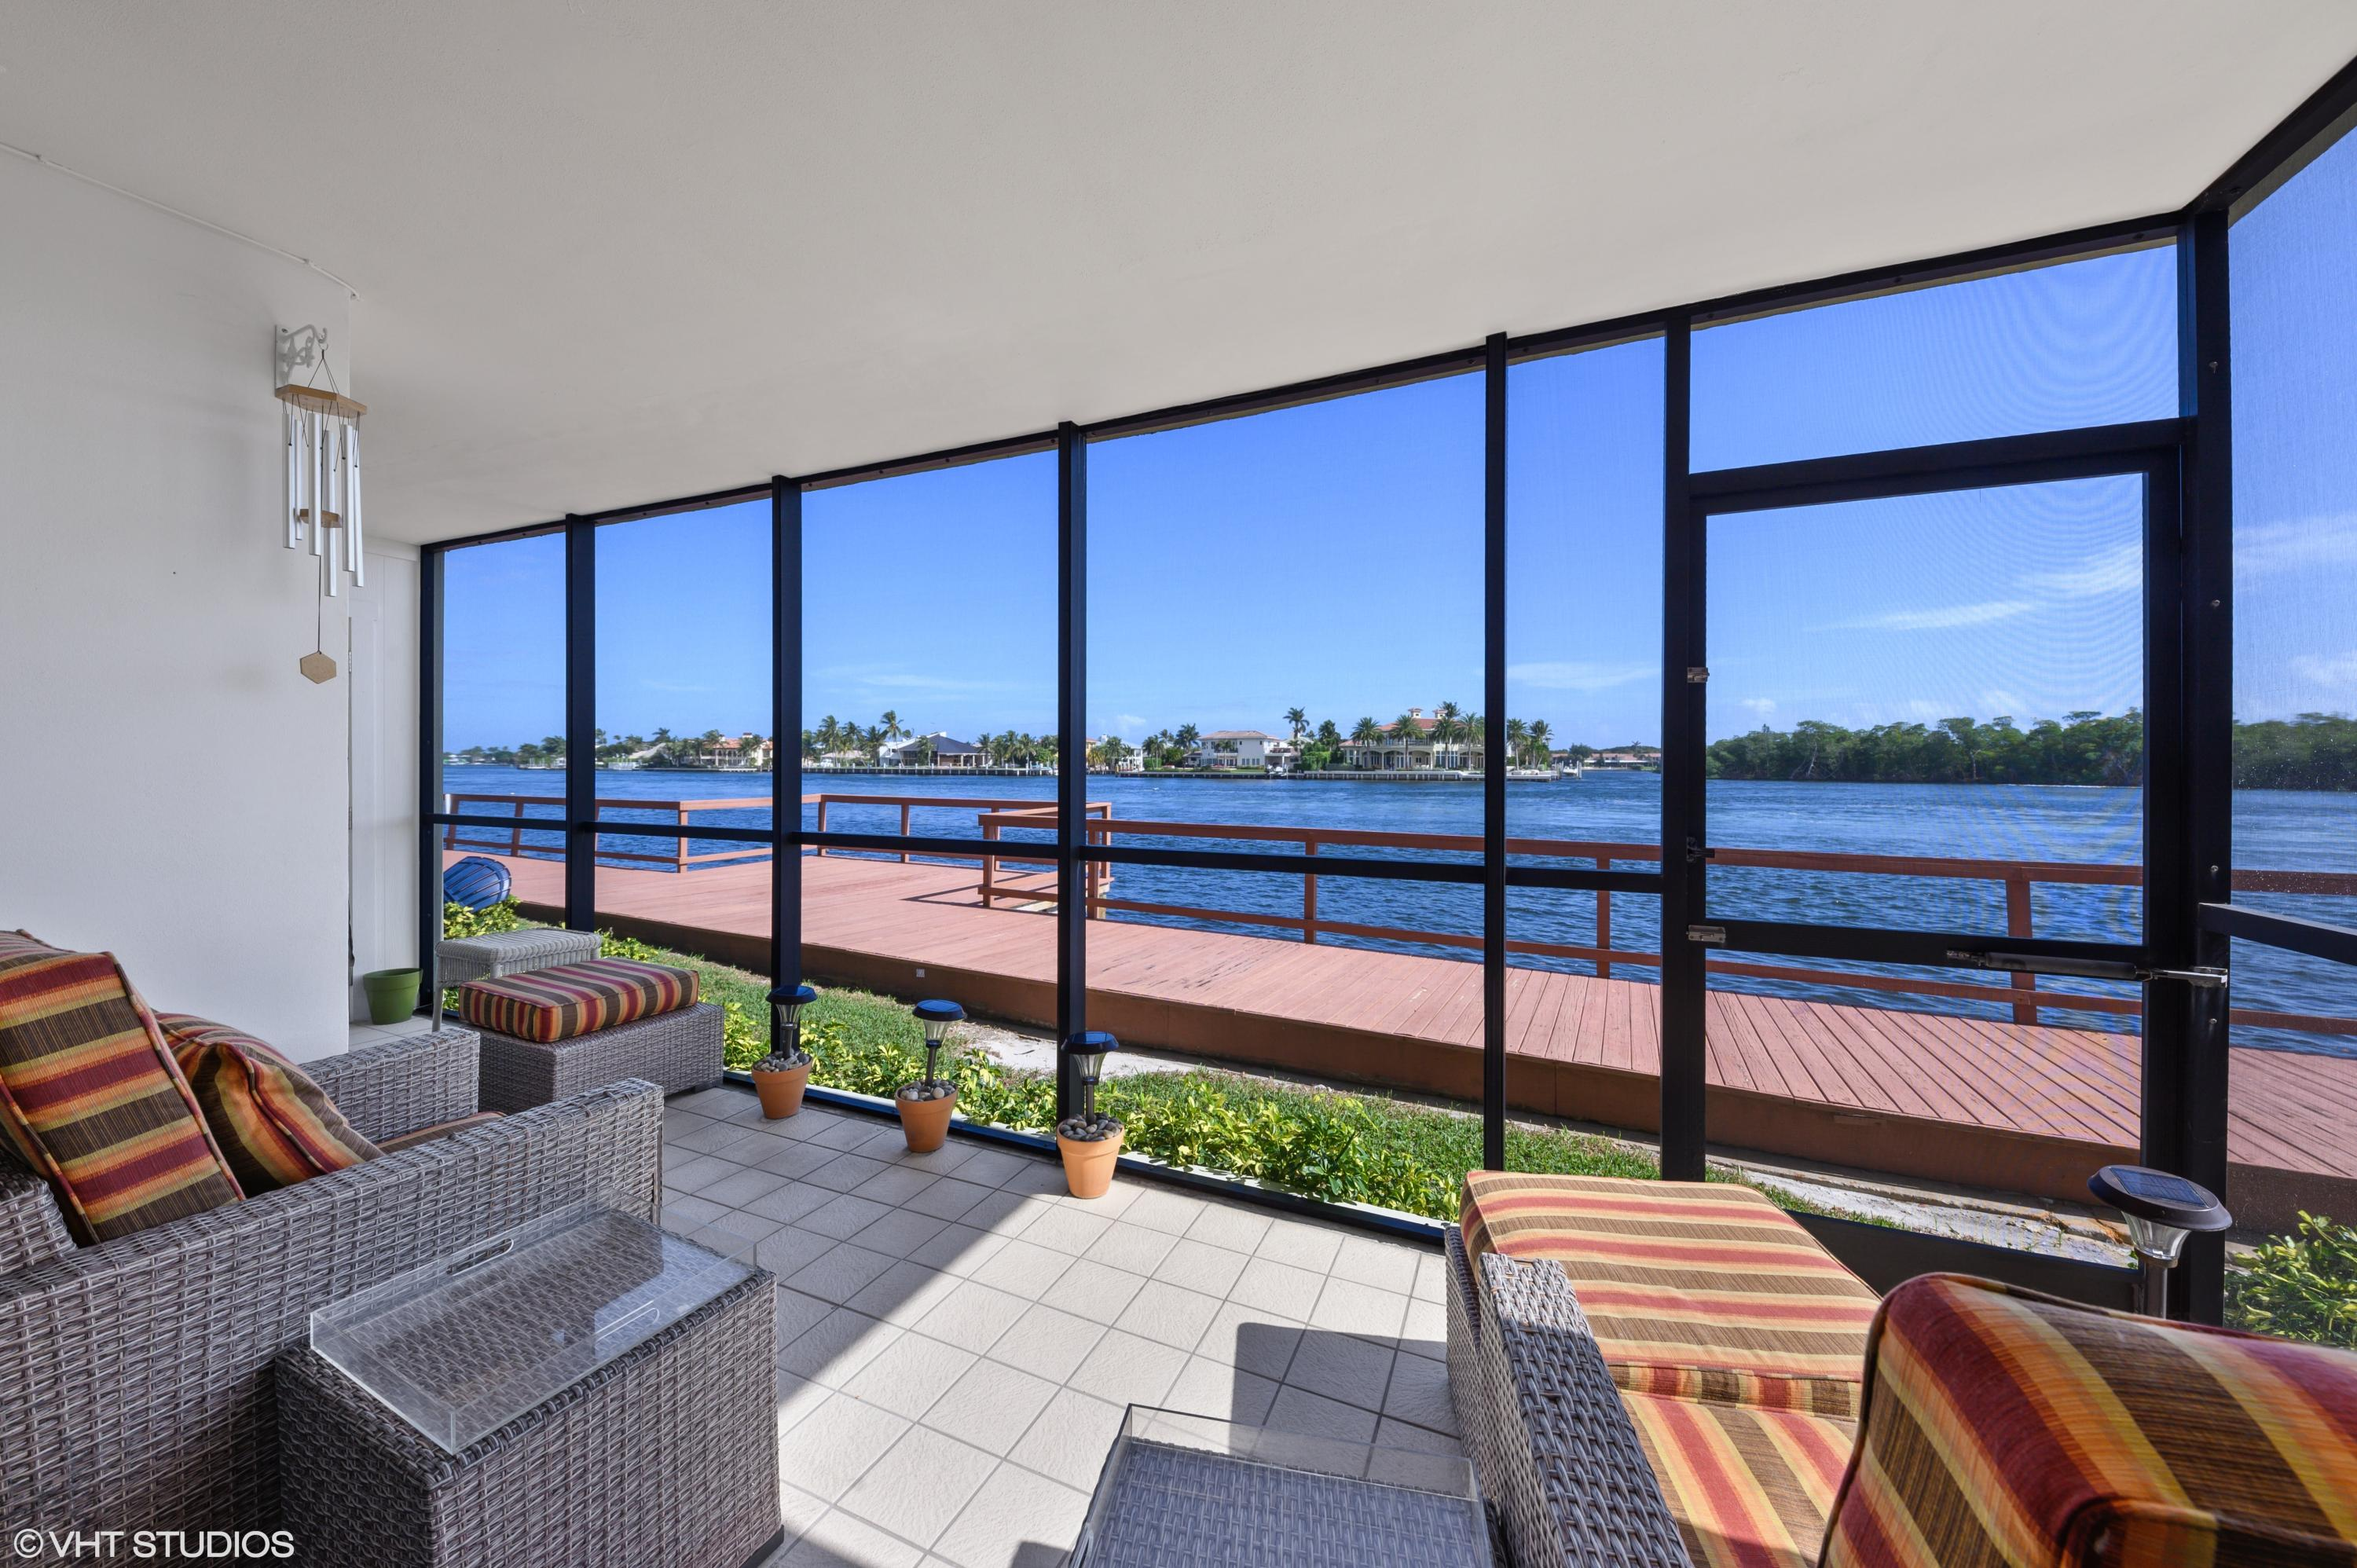 Be the envy of your friends while enjoying the easterly breezes and marine activity in this direct Intracoastal condo.   Waterviews the moment you walk in.   This renovated 2/2  condo boasts of quartz kitchen countertops, glass tiled backsplash, self-closing cabinets, and drawers.  Wood-look porcelain tiles throughout, plantation shutters, and impact windows.  The expansive screened-in lanai has tiled flooring, storage closet, accordion hurricane shutters, and no obstructing views.  This boutique, waterfront building has only 28 units. The low maintenance fee of $975.00, paid quarterly, includes water, sewer, and basic cable.   Seawall work, painting and parking lot have been completed. Close to the beach, shops, dining, highways, and airports.  Million-dollar views without the million $$$